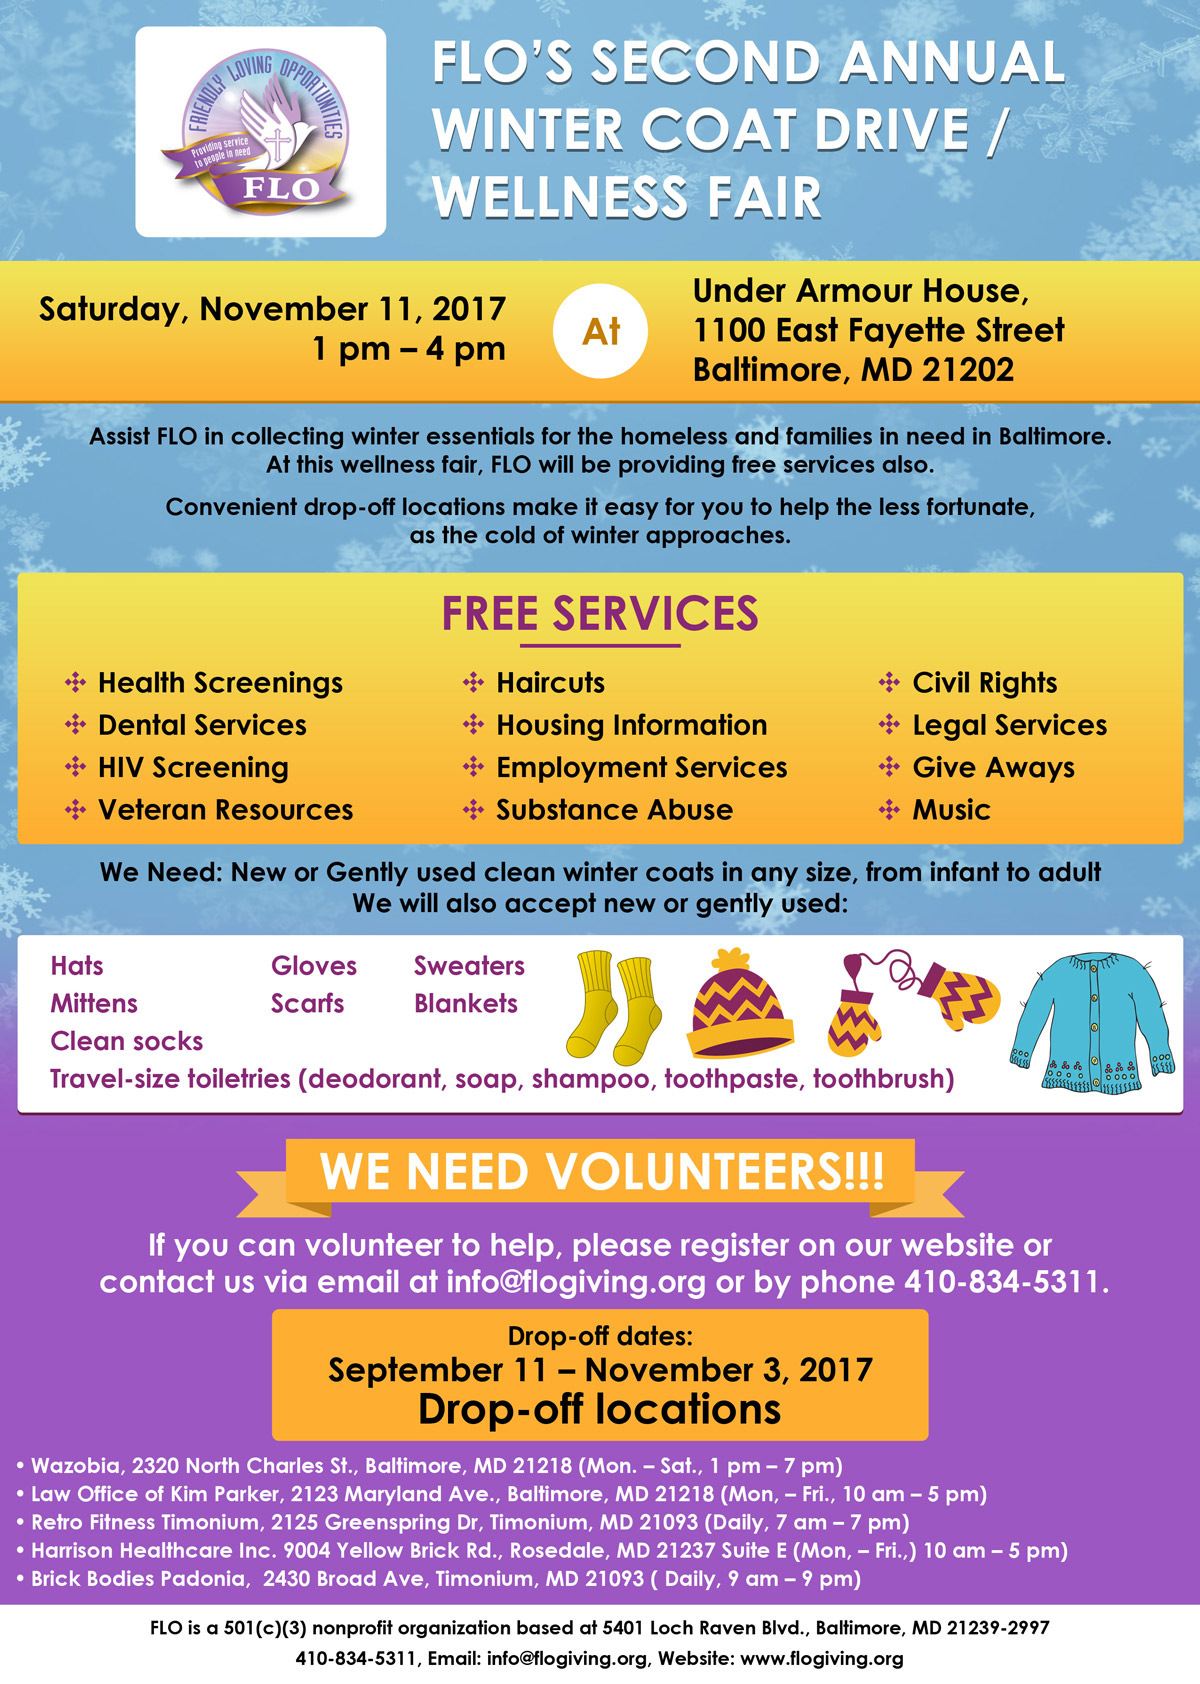 FLO's 2nd Annual Winter Coat Drive and Wellness Fair